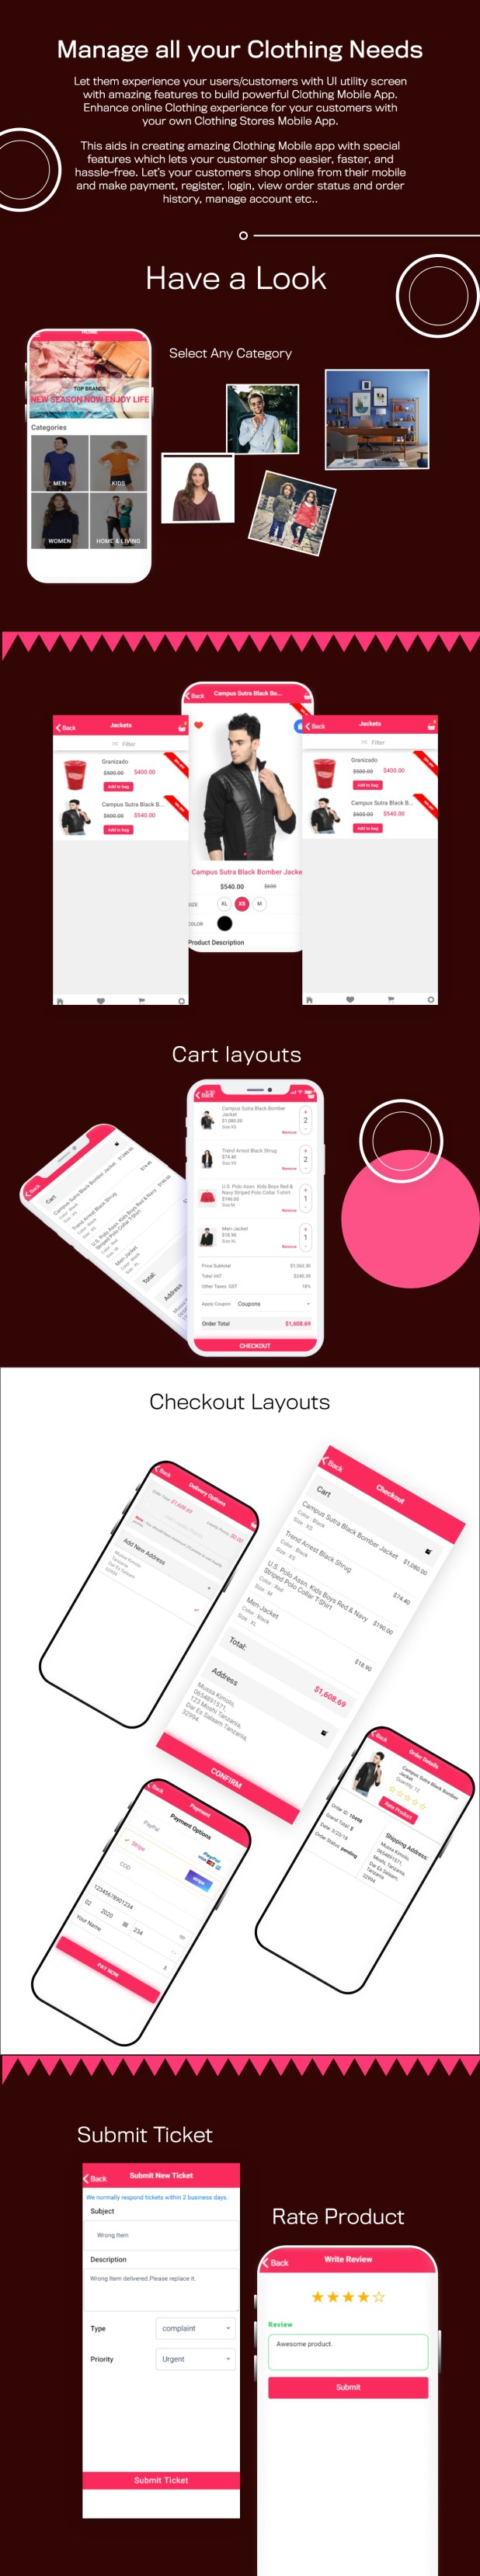 Clothing - Complete Ionic app for e-commerce shop - 4